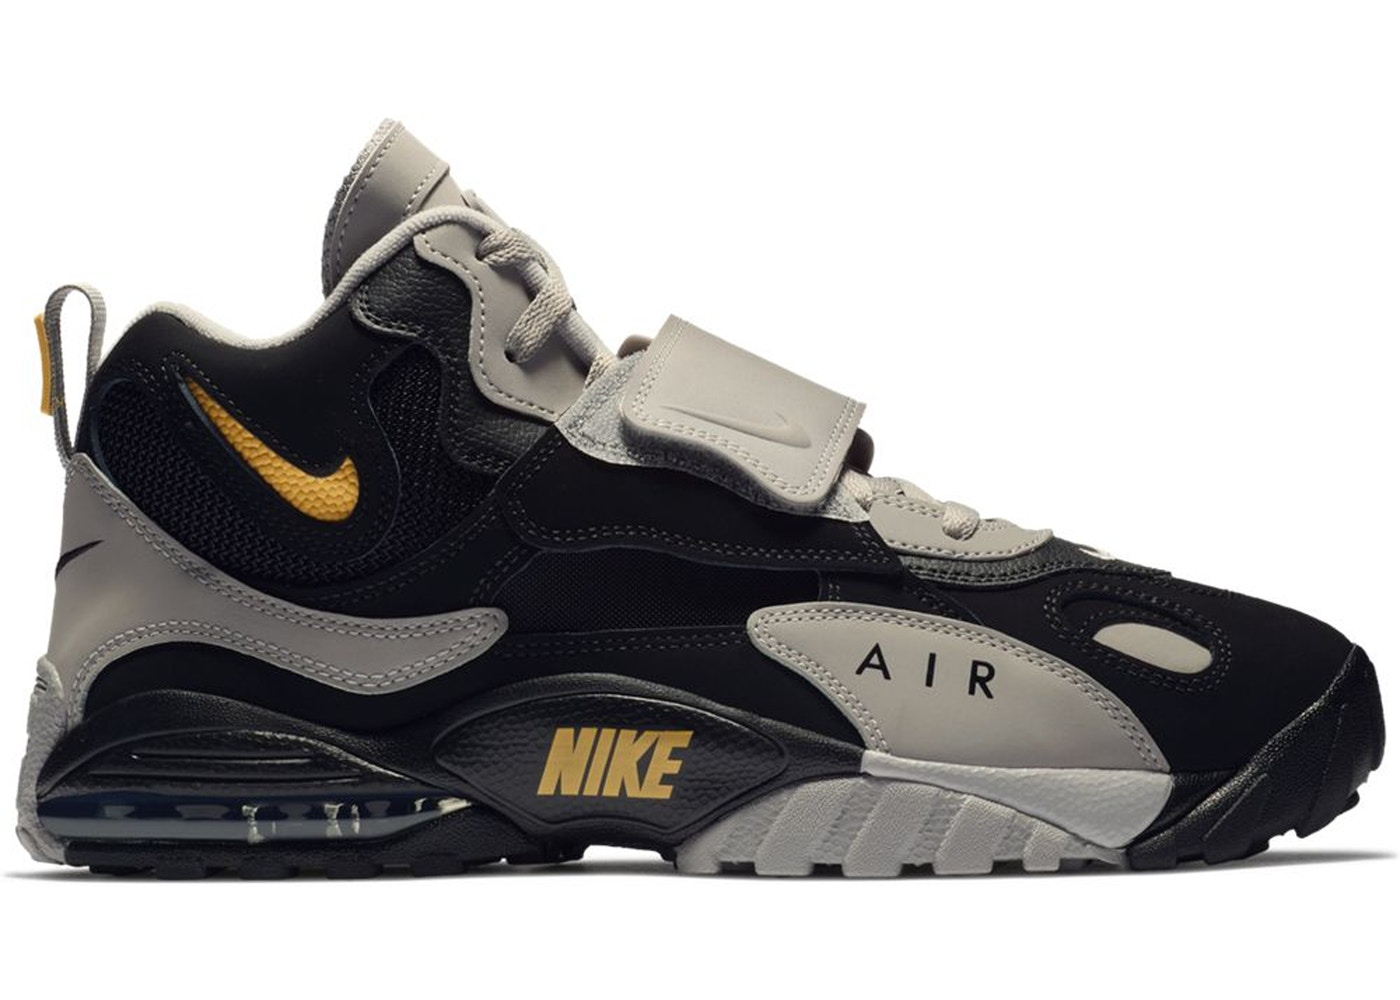 c910f86649 Air Max Speed Turf Black Grey Yellow - AV7895-001